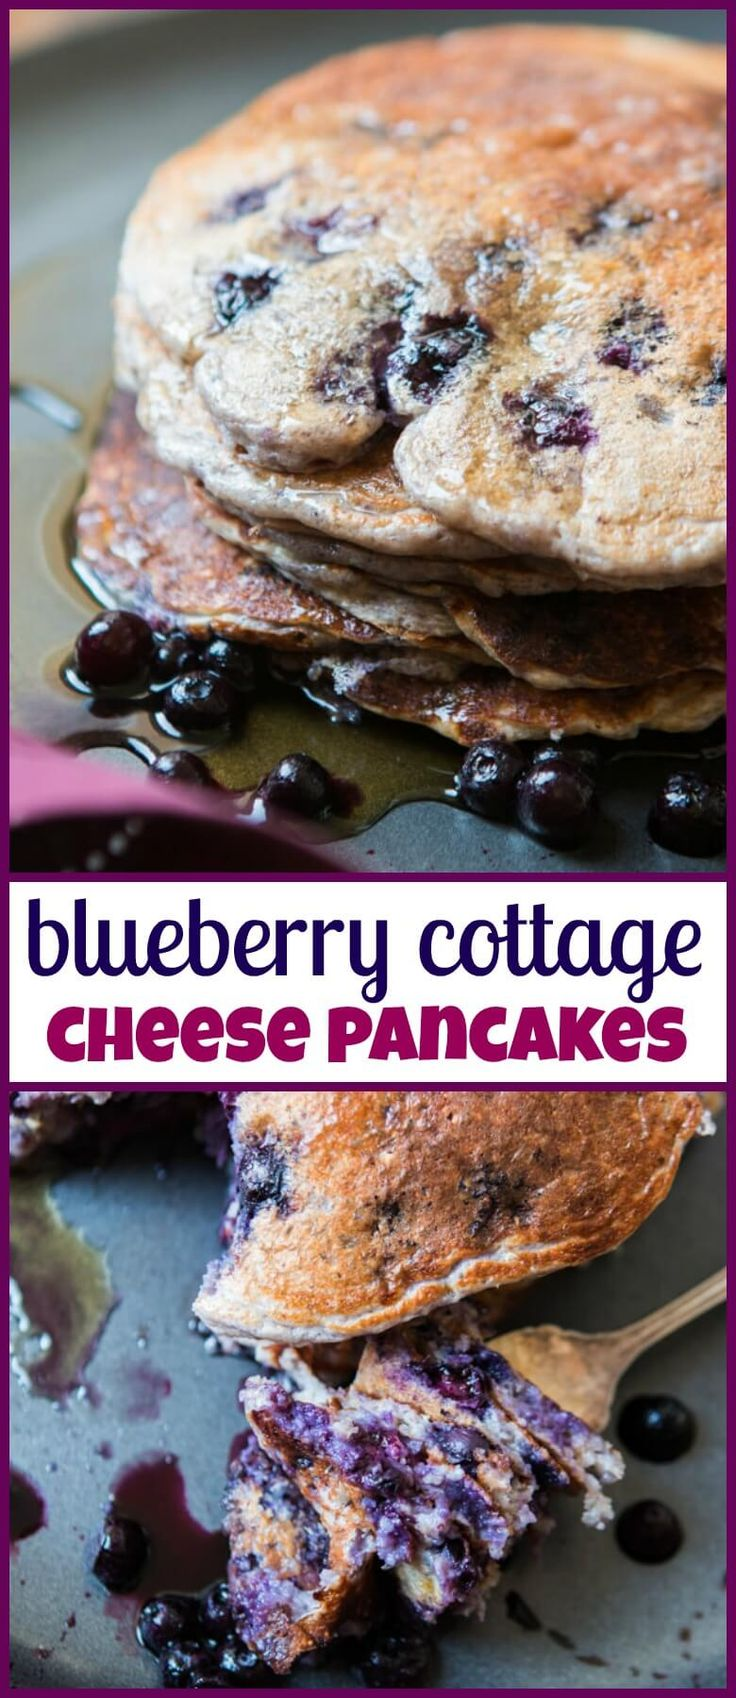 Sometimes you just need a big pile of pancakes and these healthy wild blueberry cottage cheese pancakes will fill your belly but not your waistline. gluten-free via @ohsweetbasil